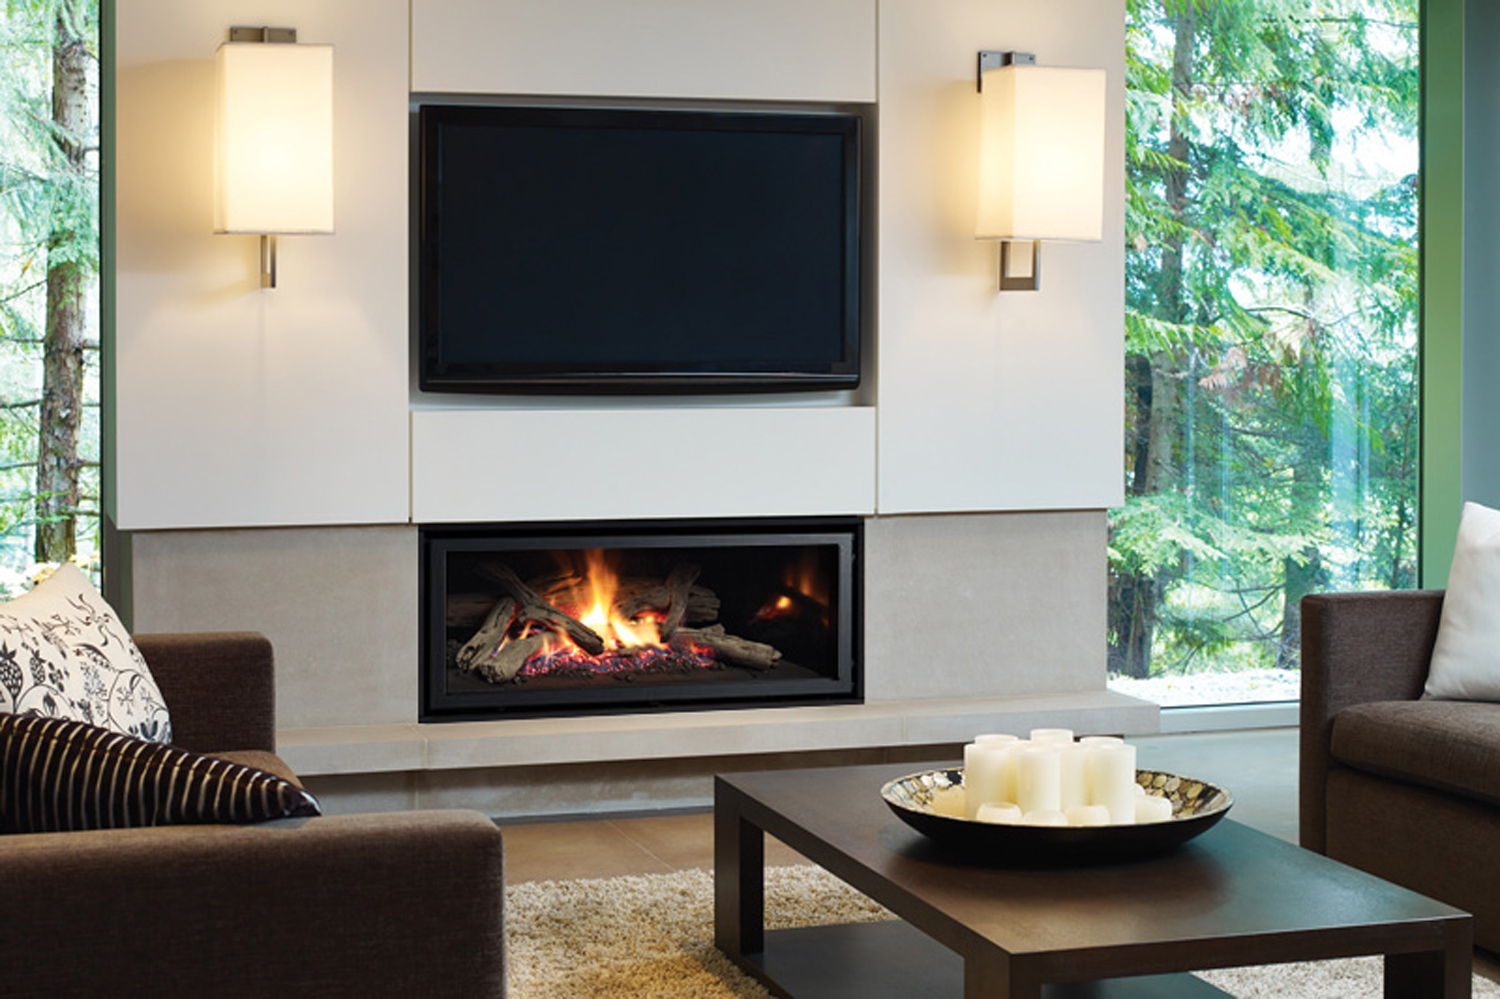 New GF950L: Our most flexible fireplace yet!